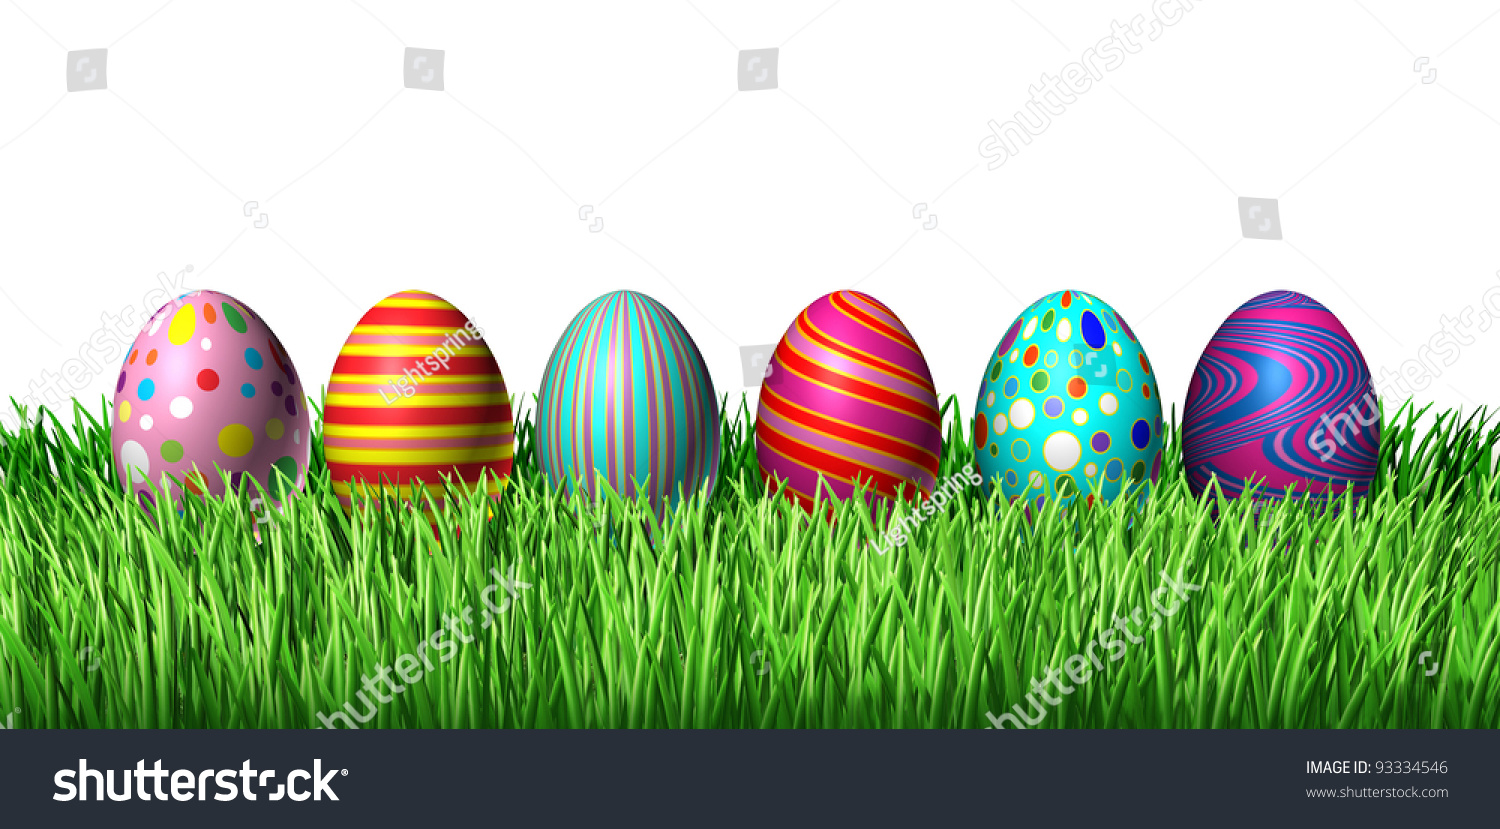 Cockatile Sitting On Easter Eggs 27